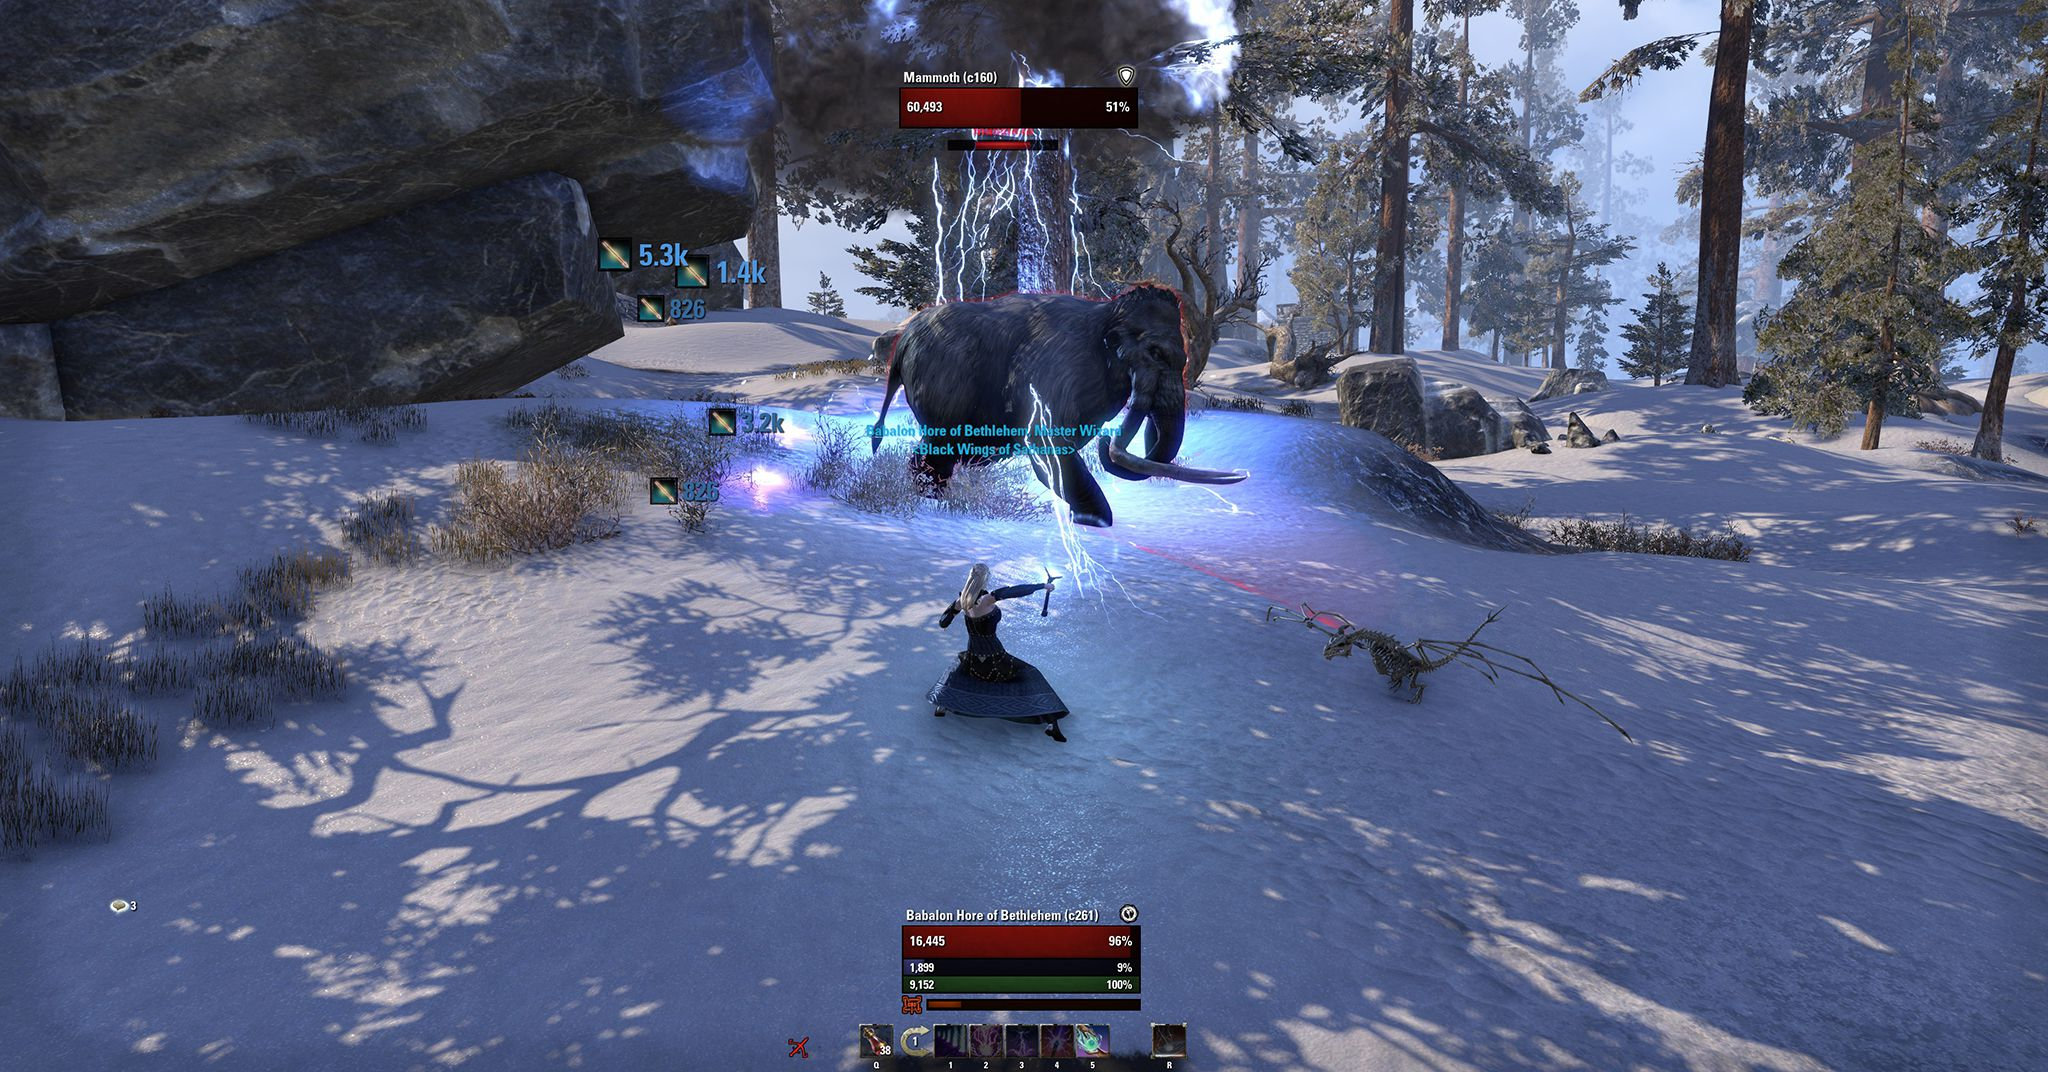 Foundry Tactical Combat by Rhyono, The Elder Scrolls Online Addon (image by @serpentaa)